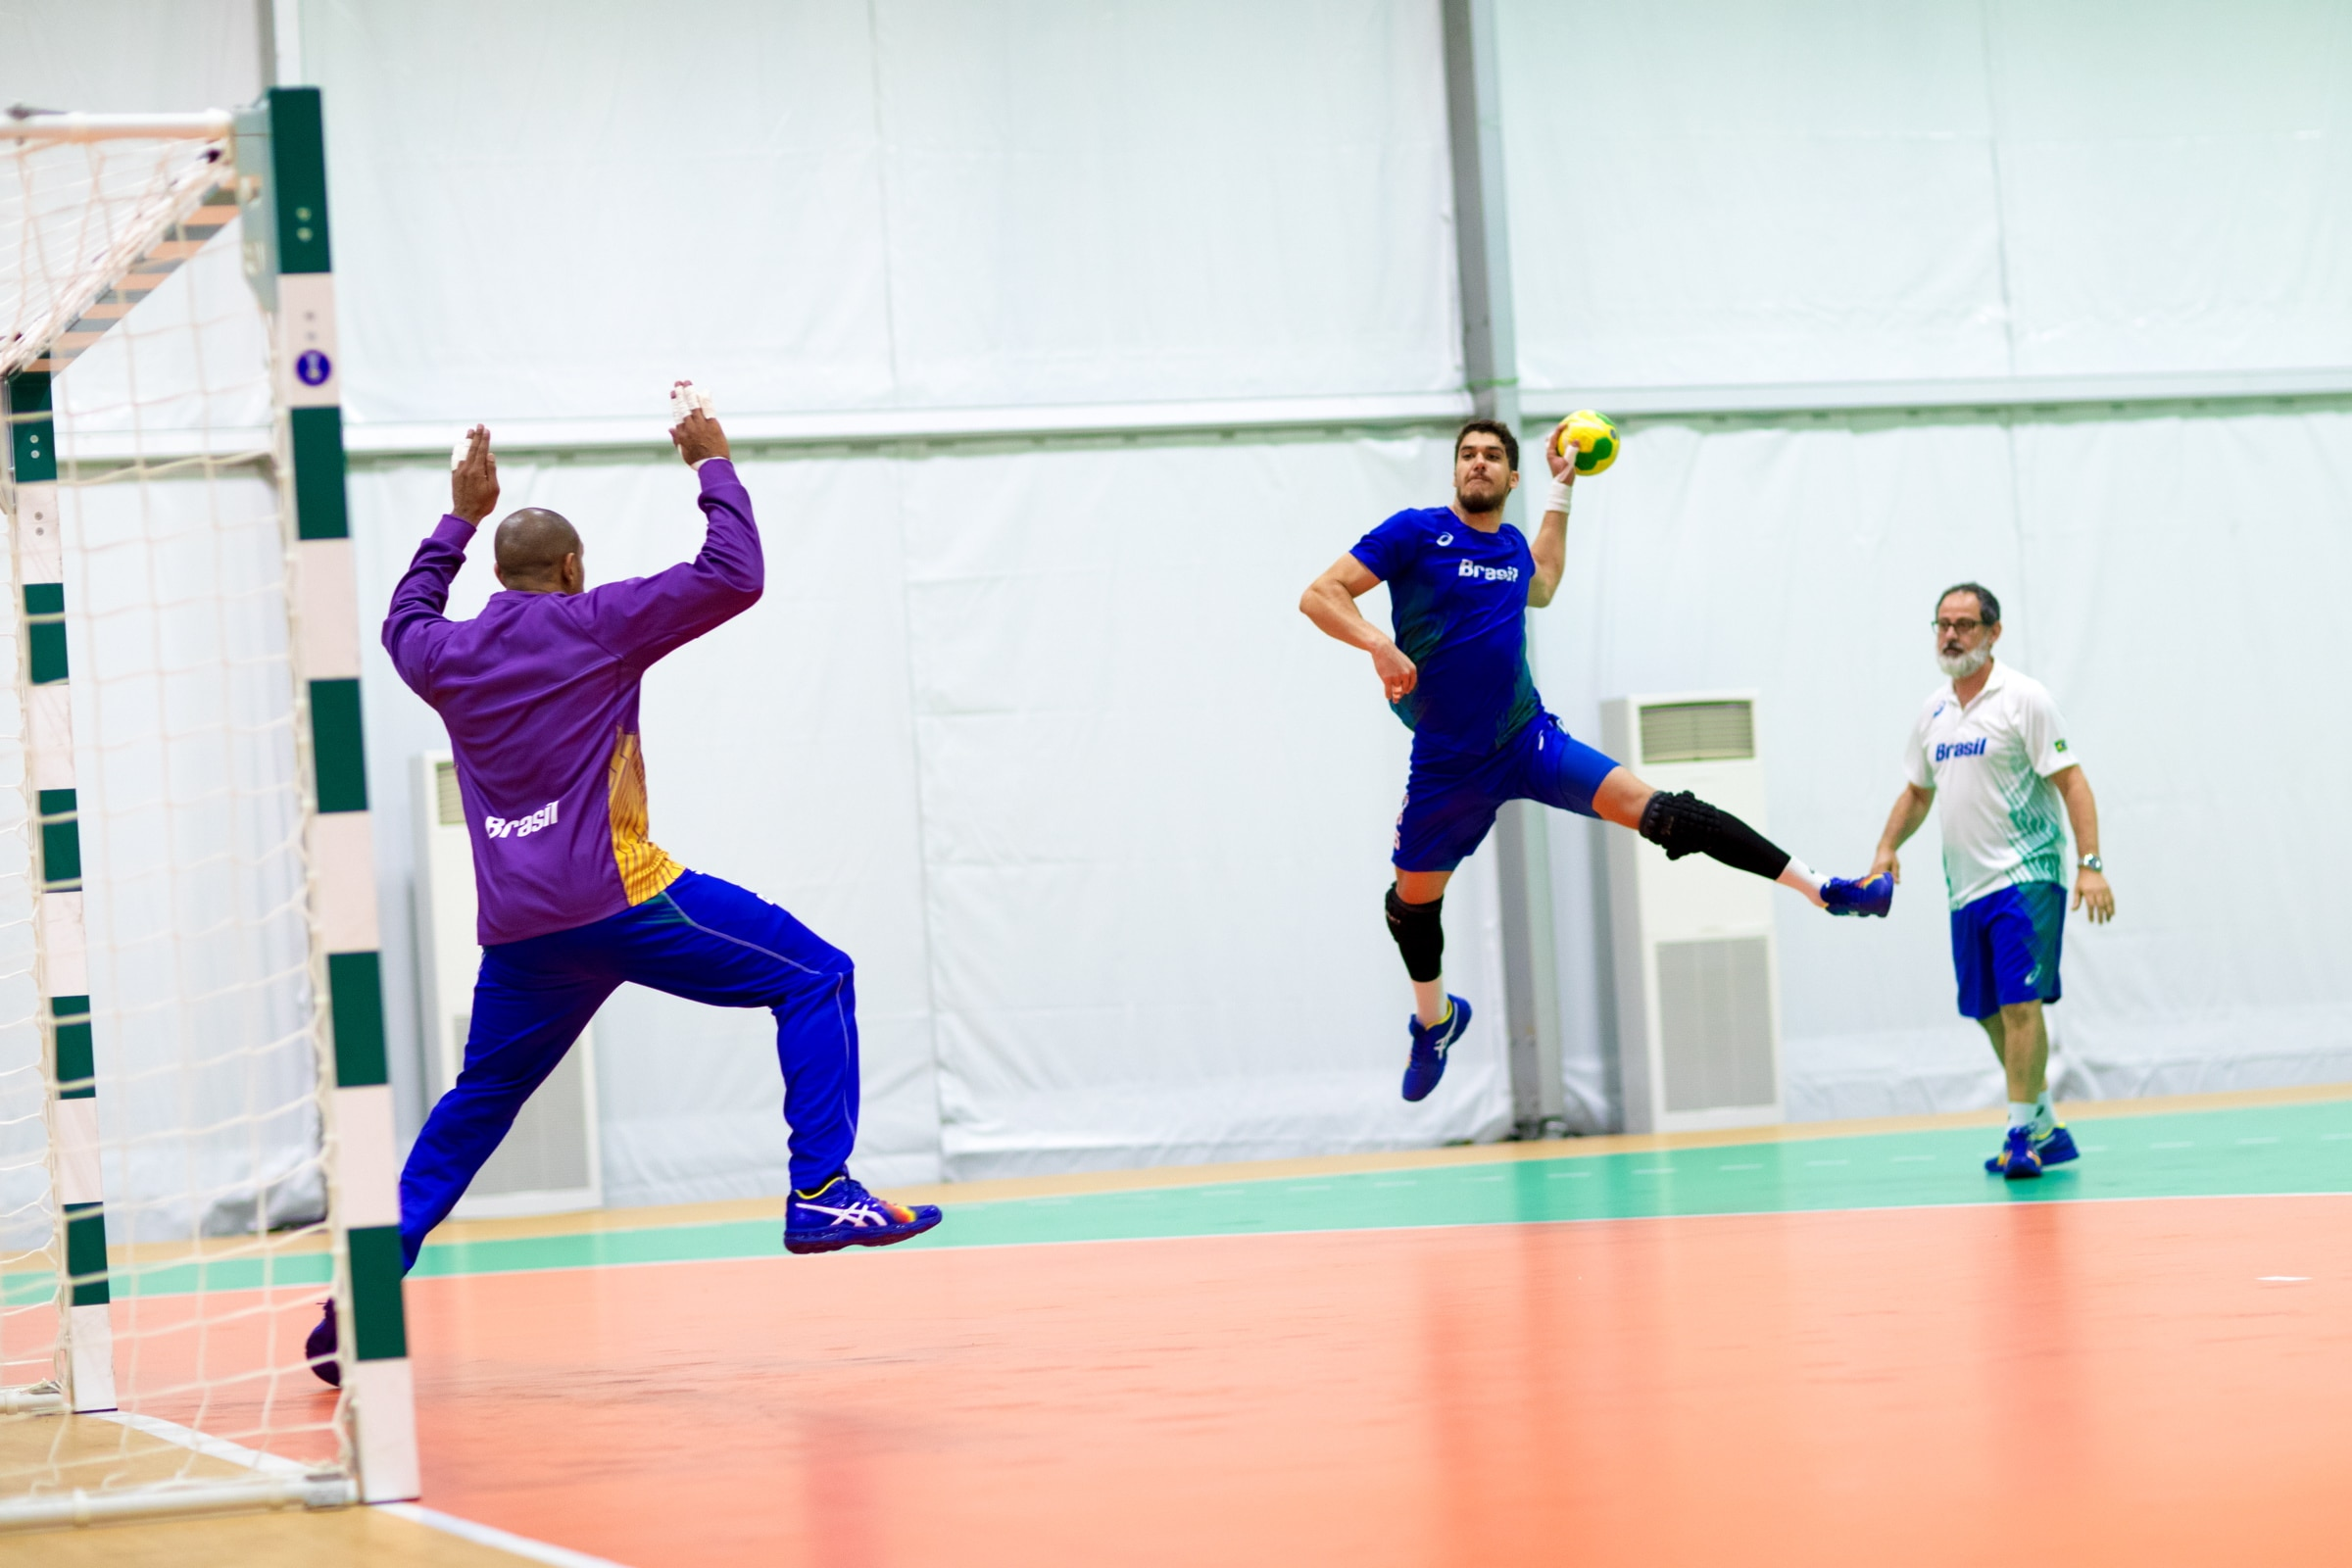 Handball Training